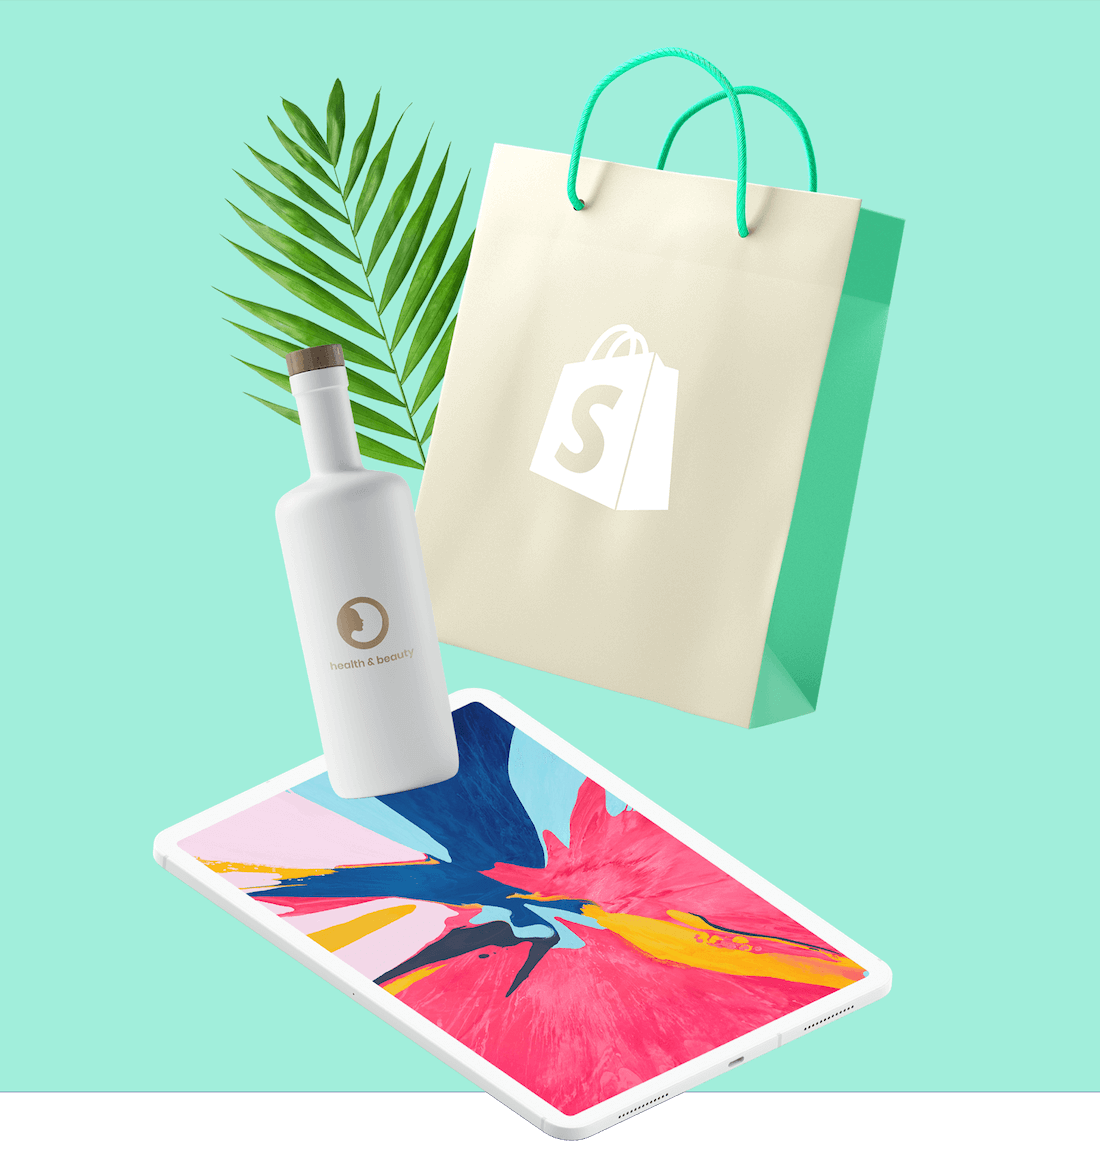 Shopify bag and other Shopify products on a green background